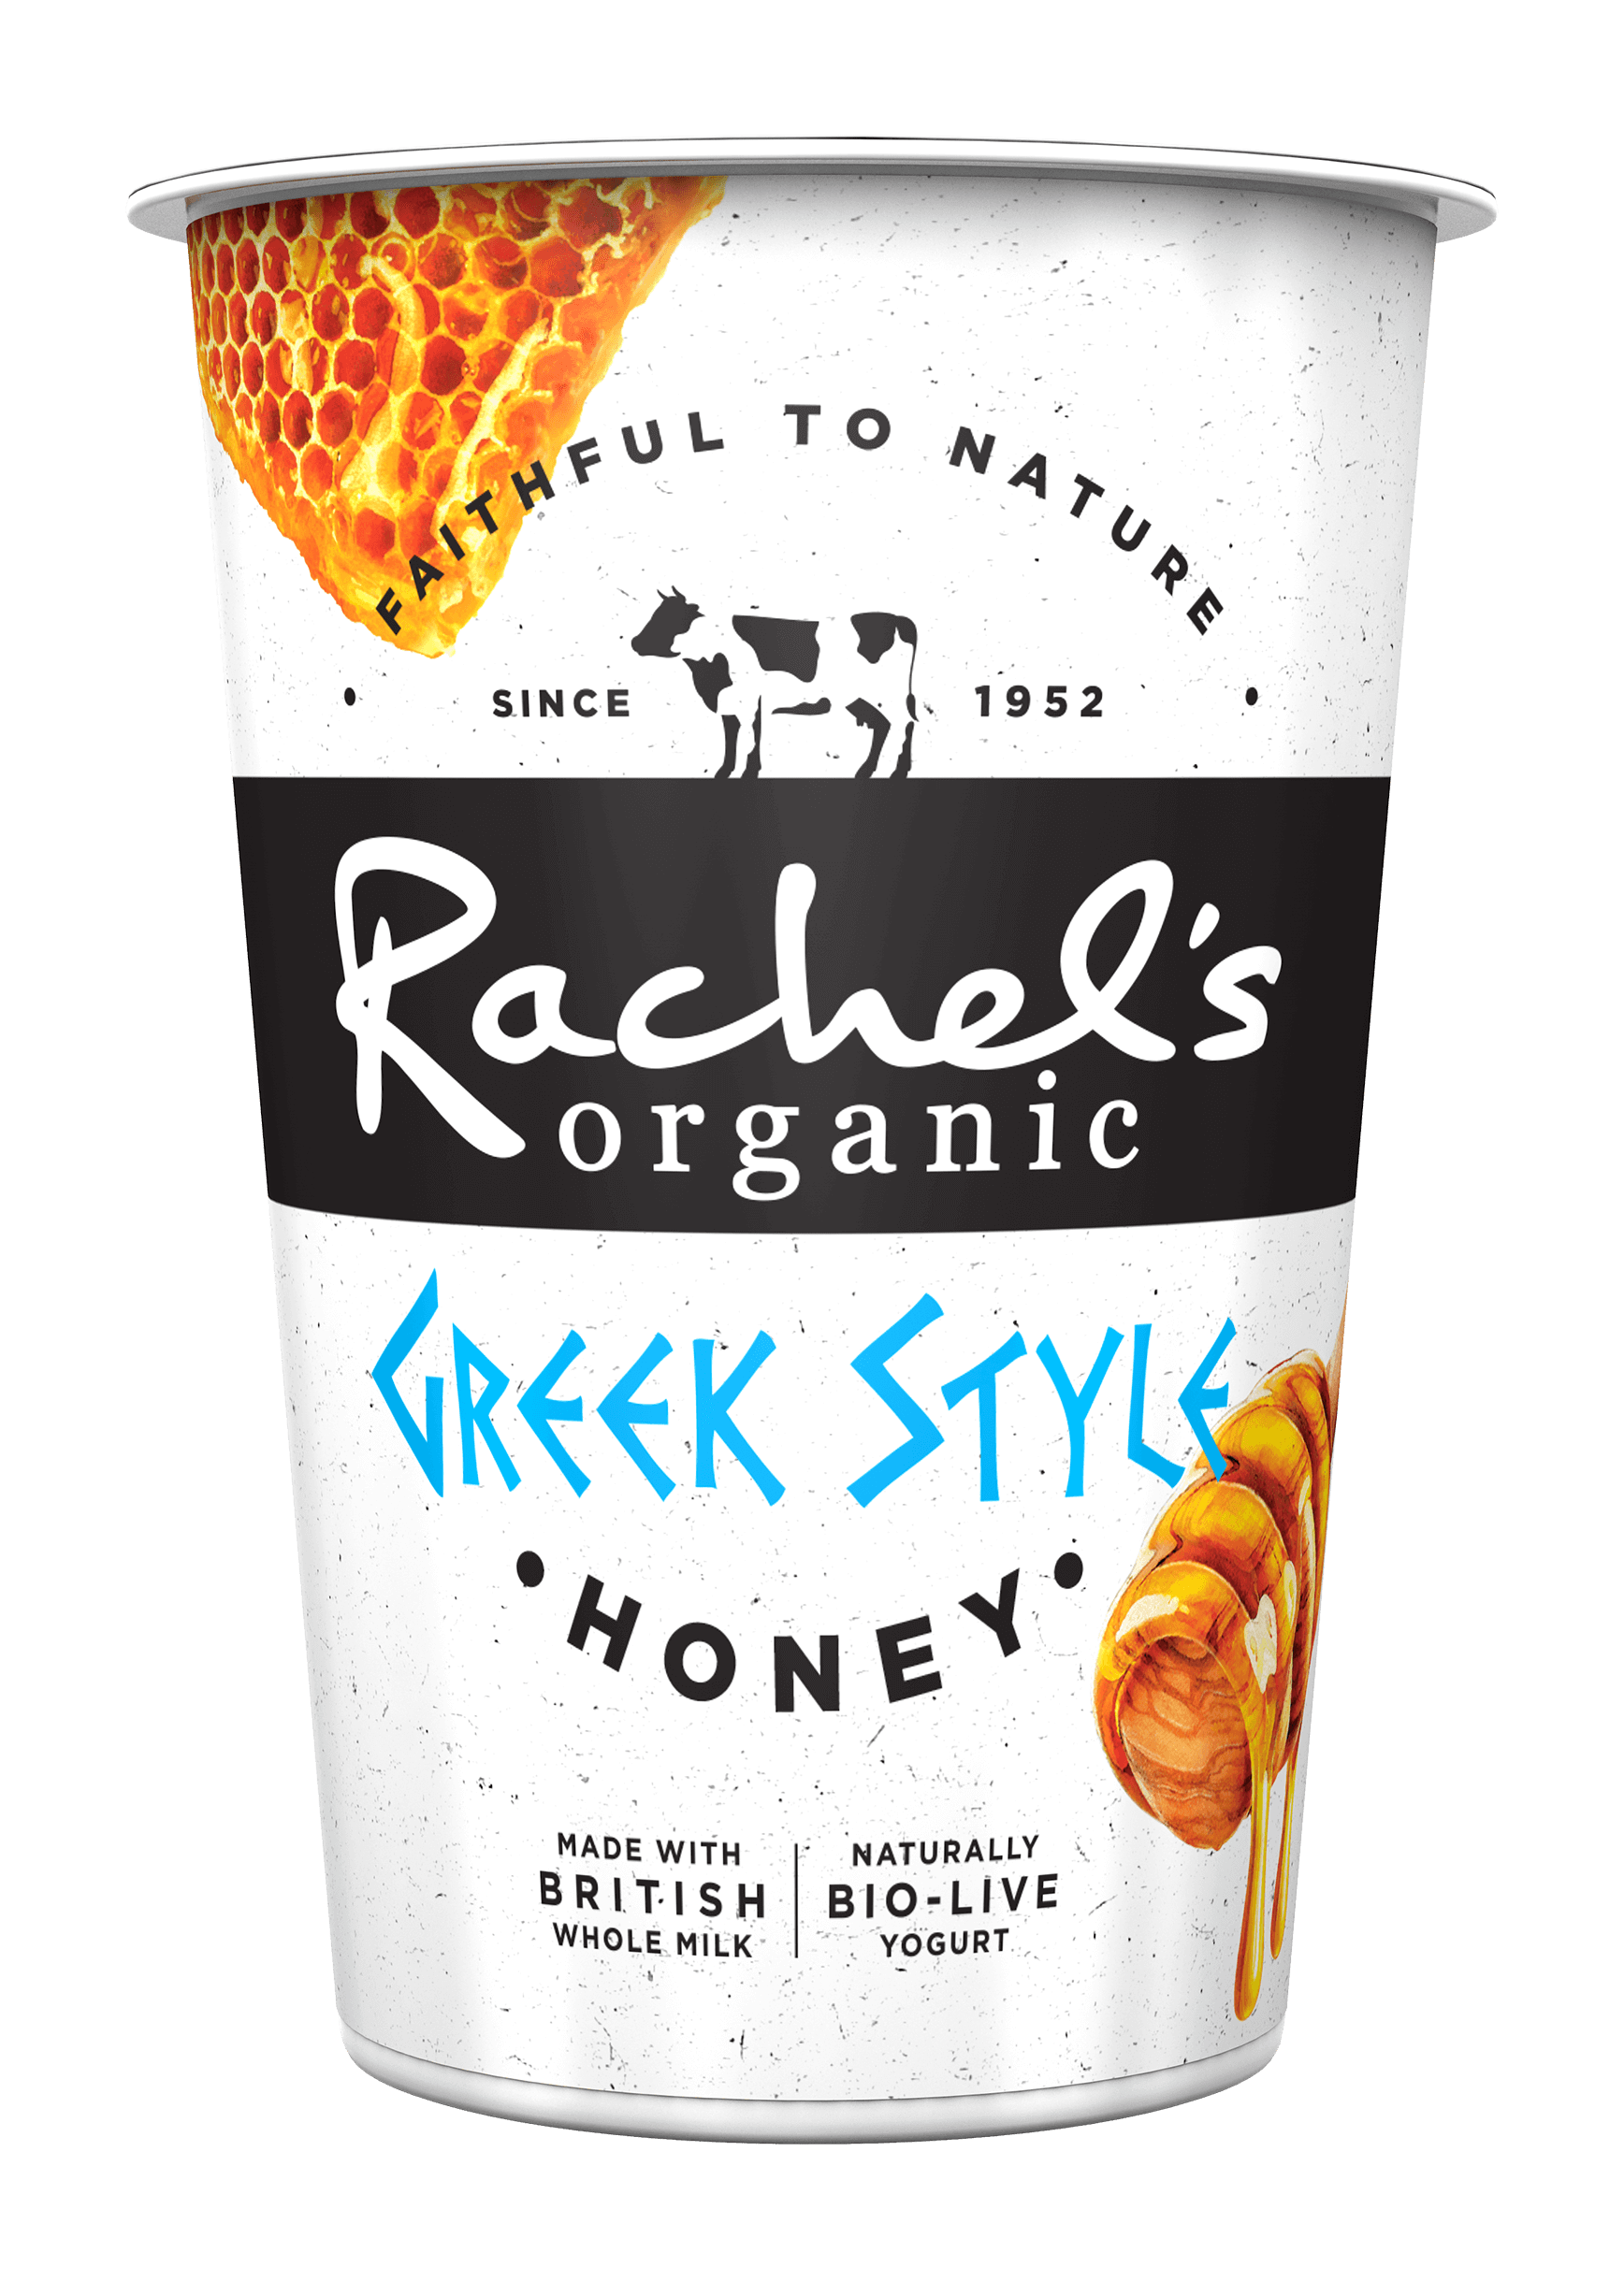 https://www.rachelsorganic.co.uk/wp-content/uploads/2019/06/5021638190005-3D-RACHELS-450G-POT-GREEK-STYLE-HONEY.png